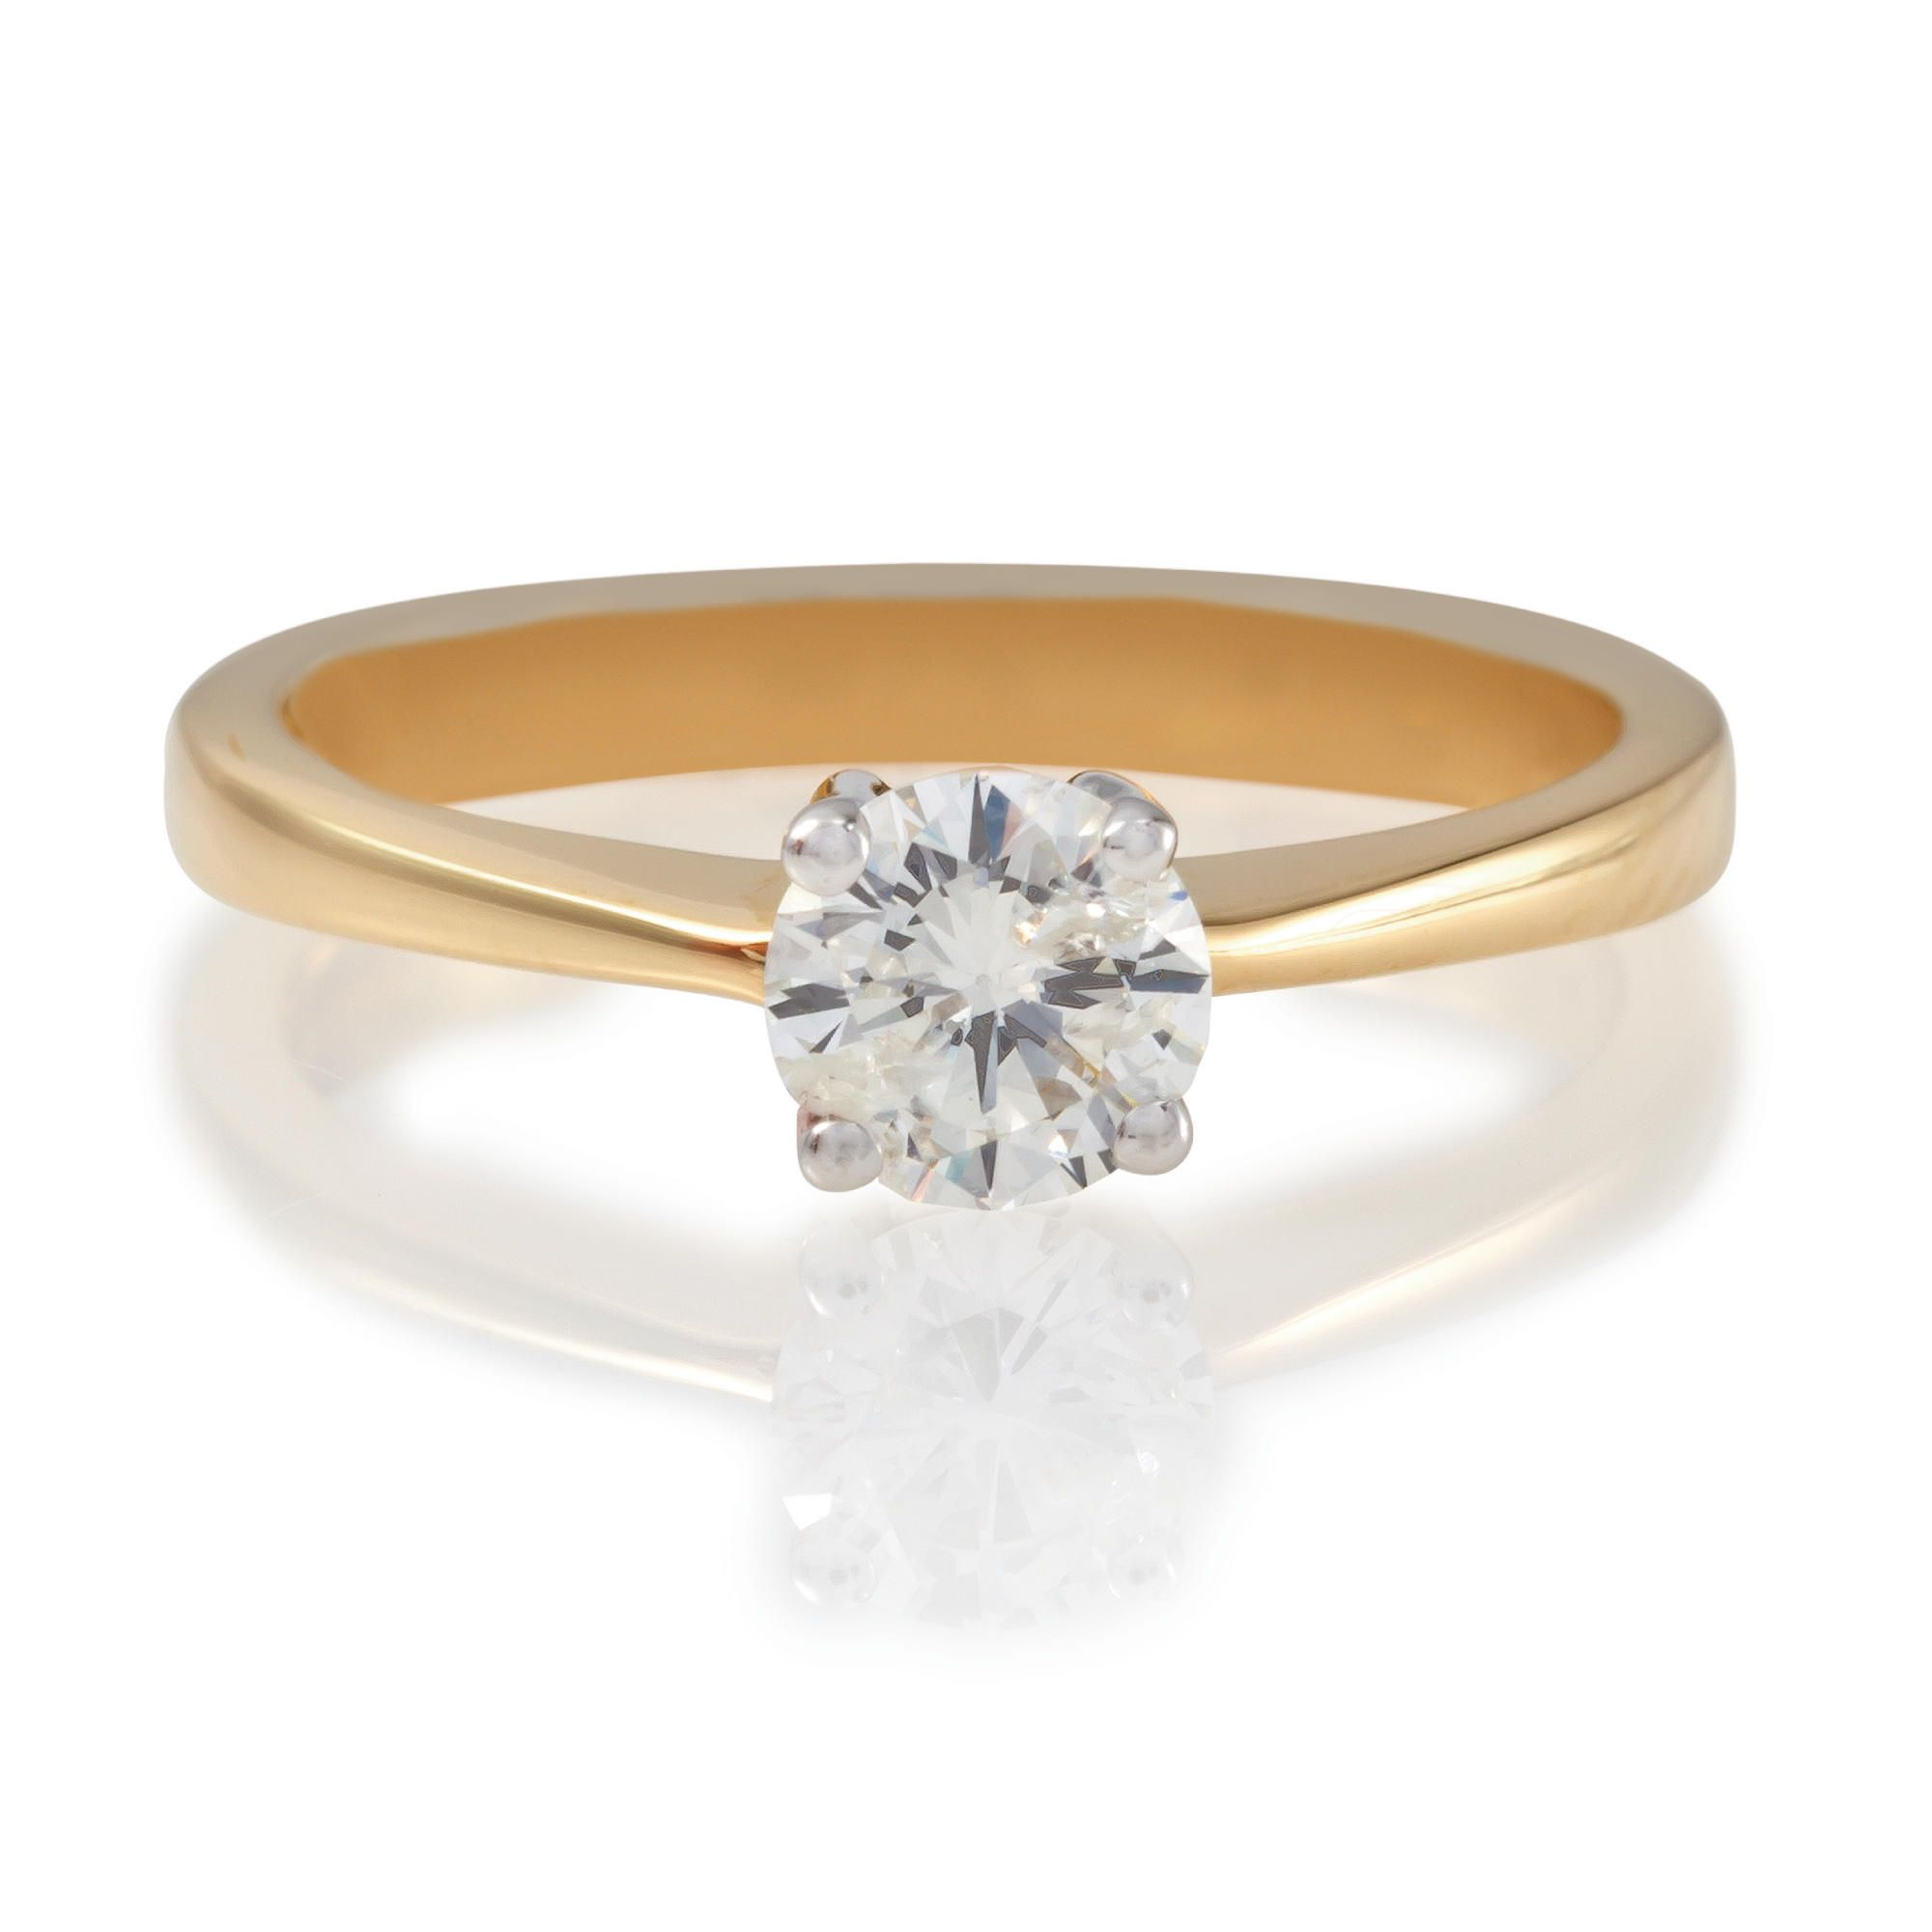 18ct Gold 1/2ct Diamond Solitaire Ring, N at Tesco Direct